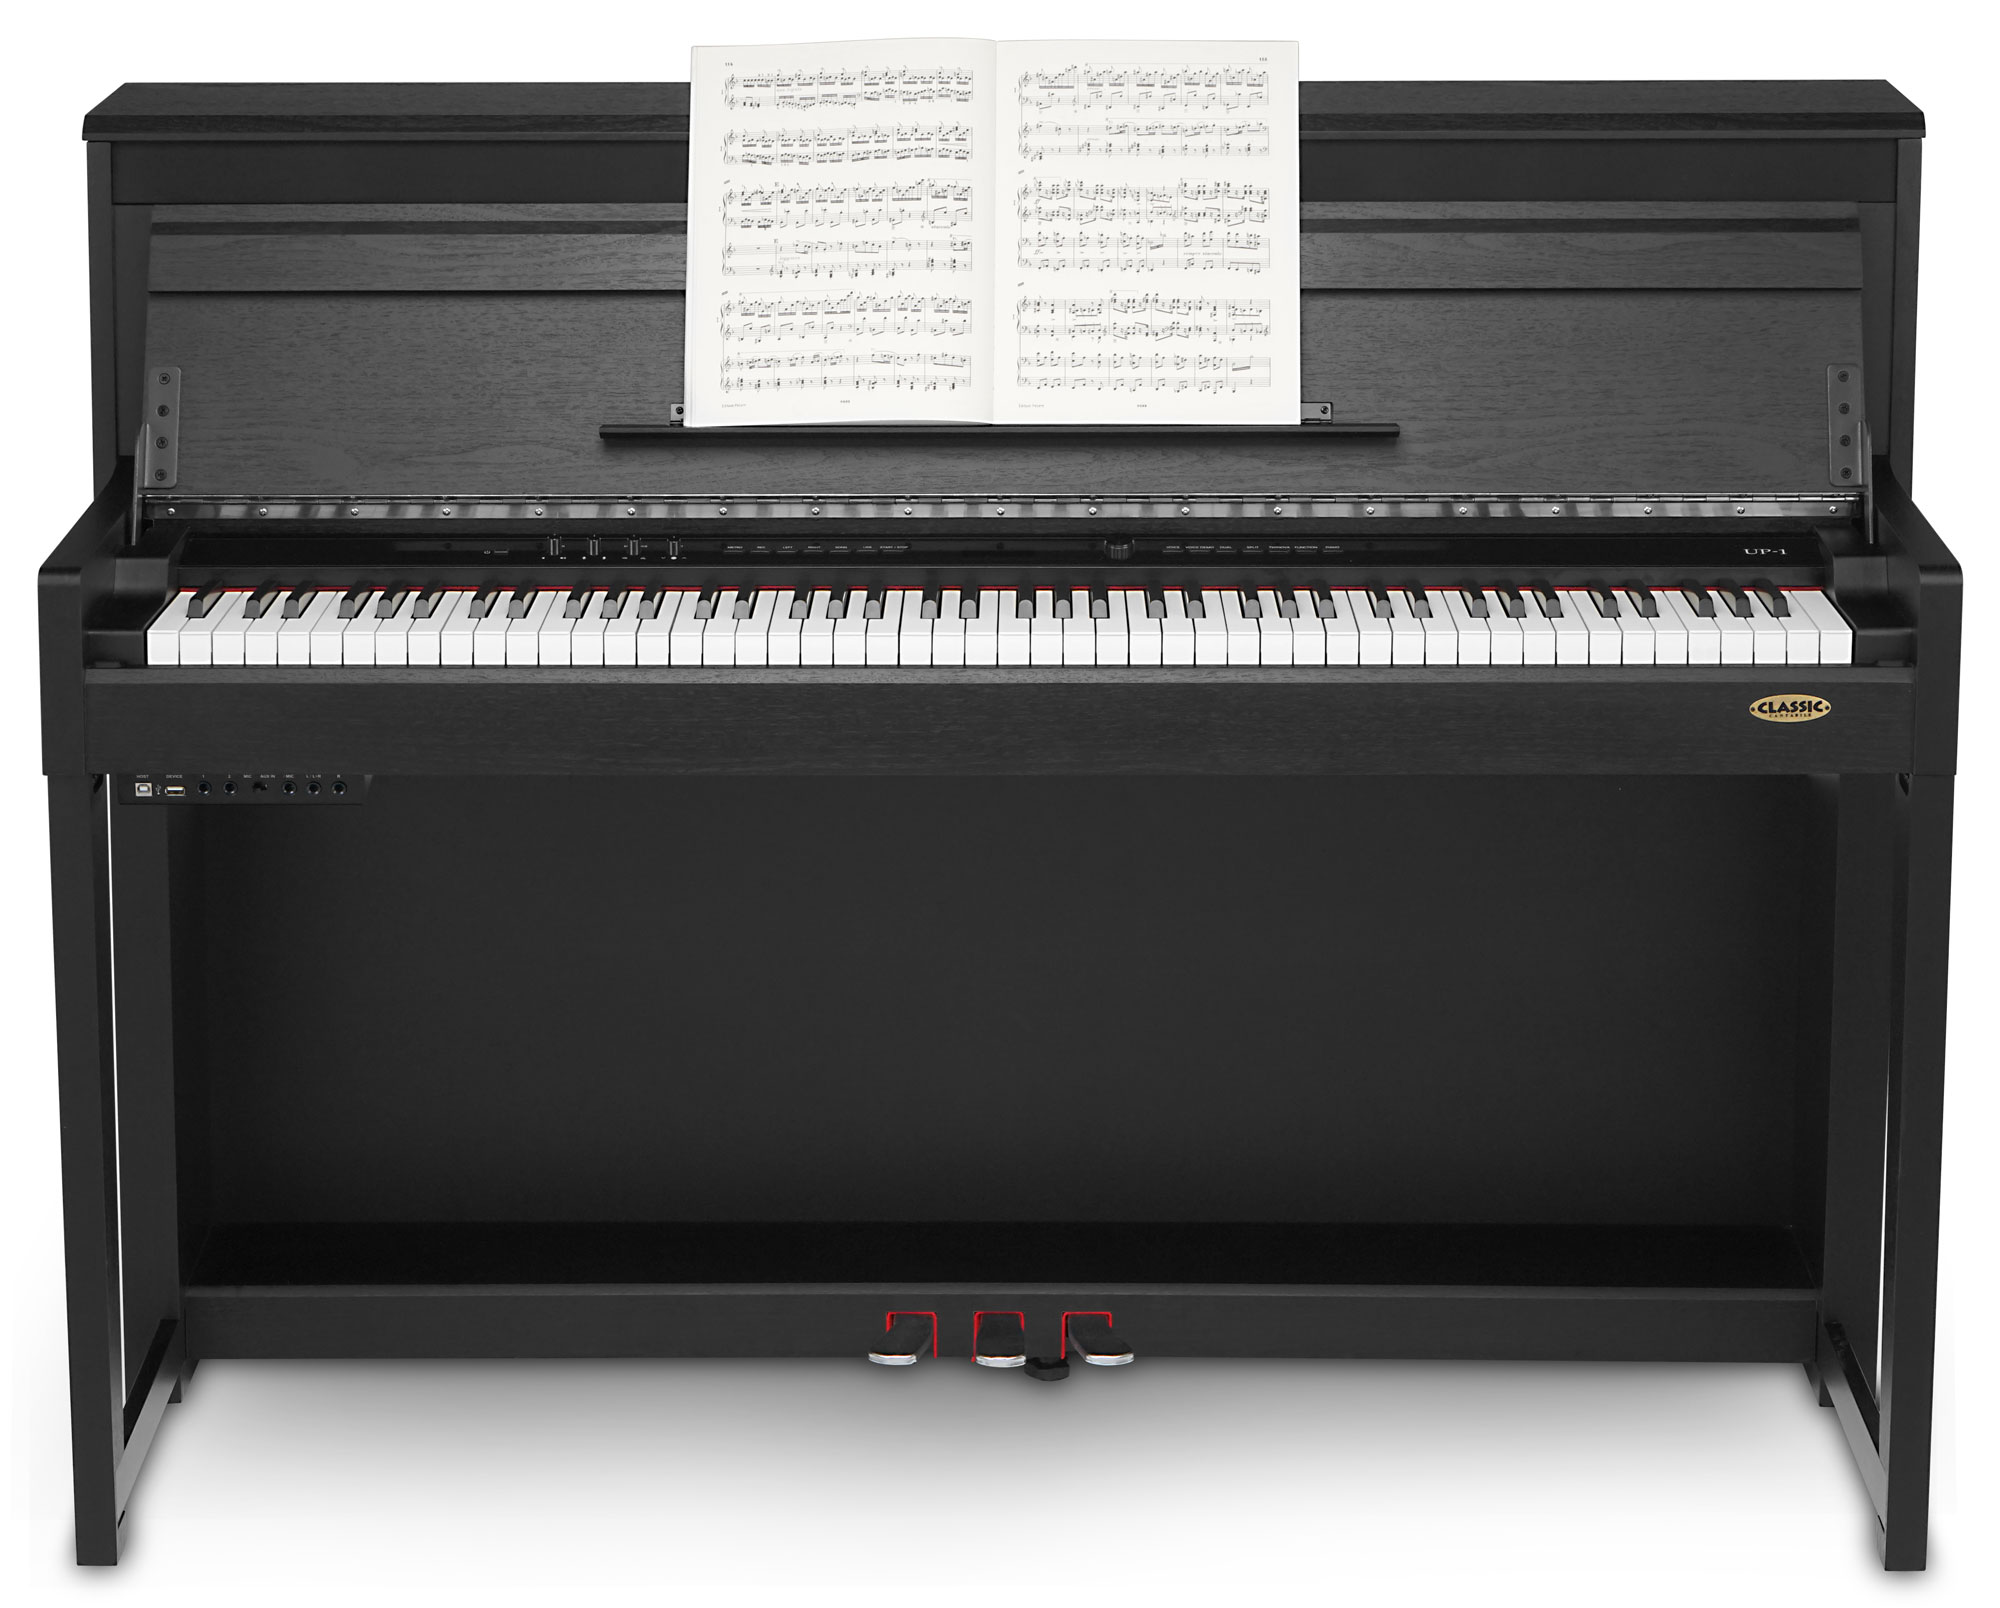 Classic Cantabile Up 1 Sm Upright E Piano Black Matte